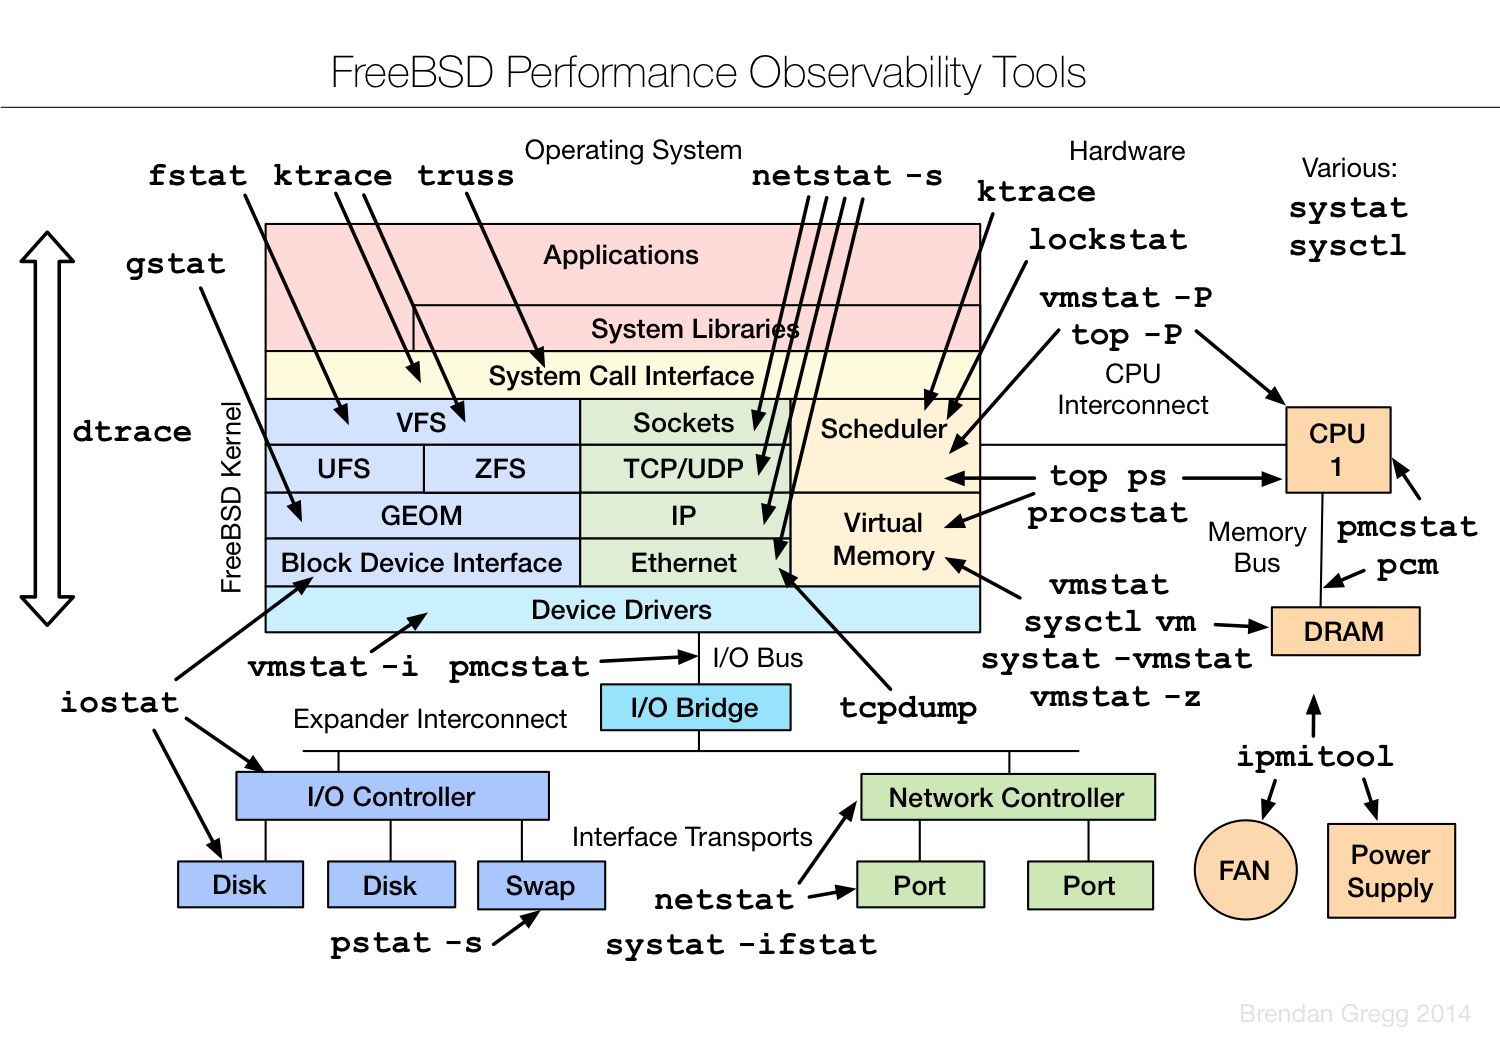 MeetBSD CA: Performance Analysis of BSD